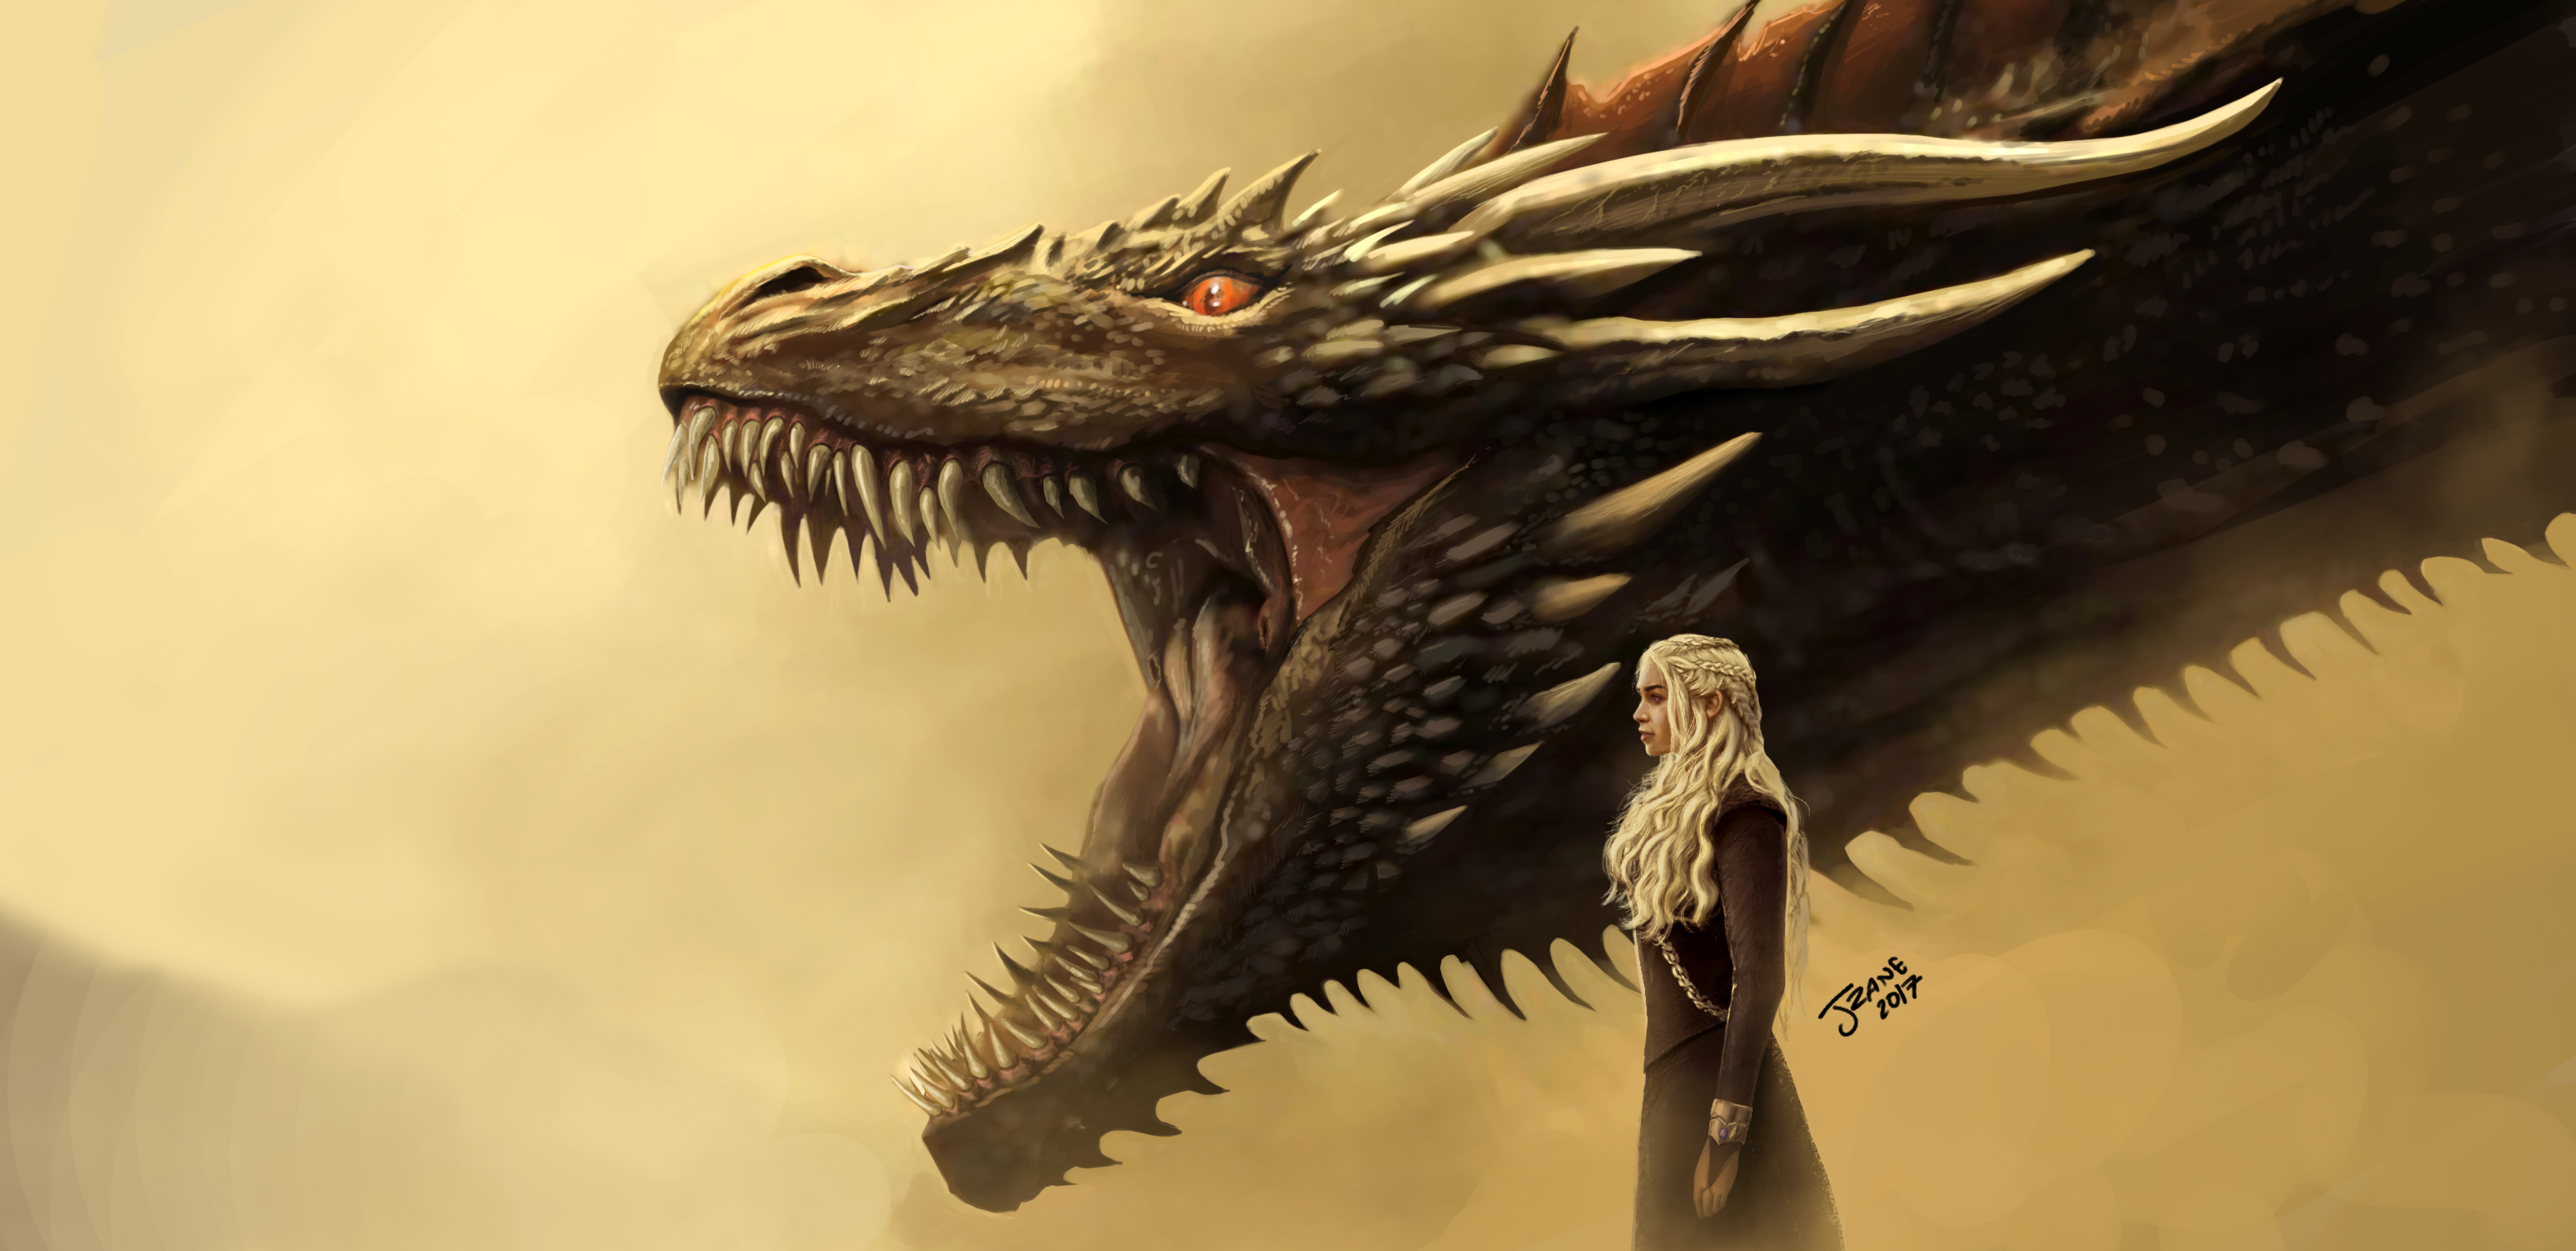 Dracarys By Jzane12 Dbjw88y Png 3160 1534 Game Of Thrones Tattoo Drogon Game Of Thrones Game Of Thrones Art